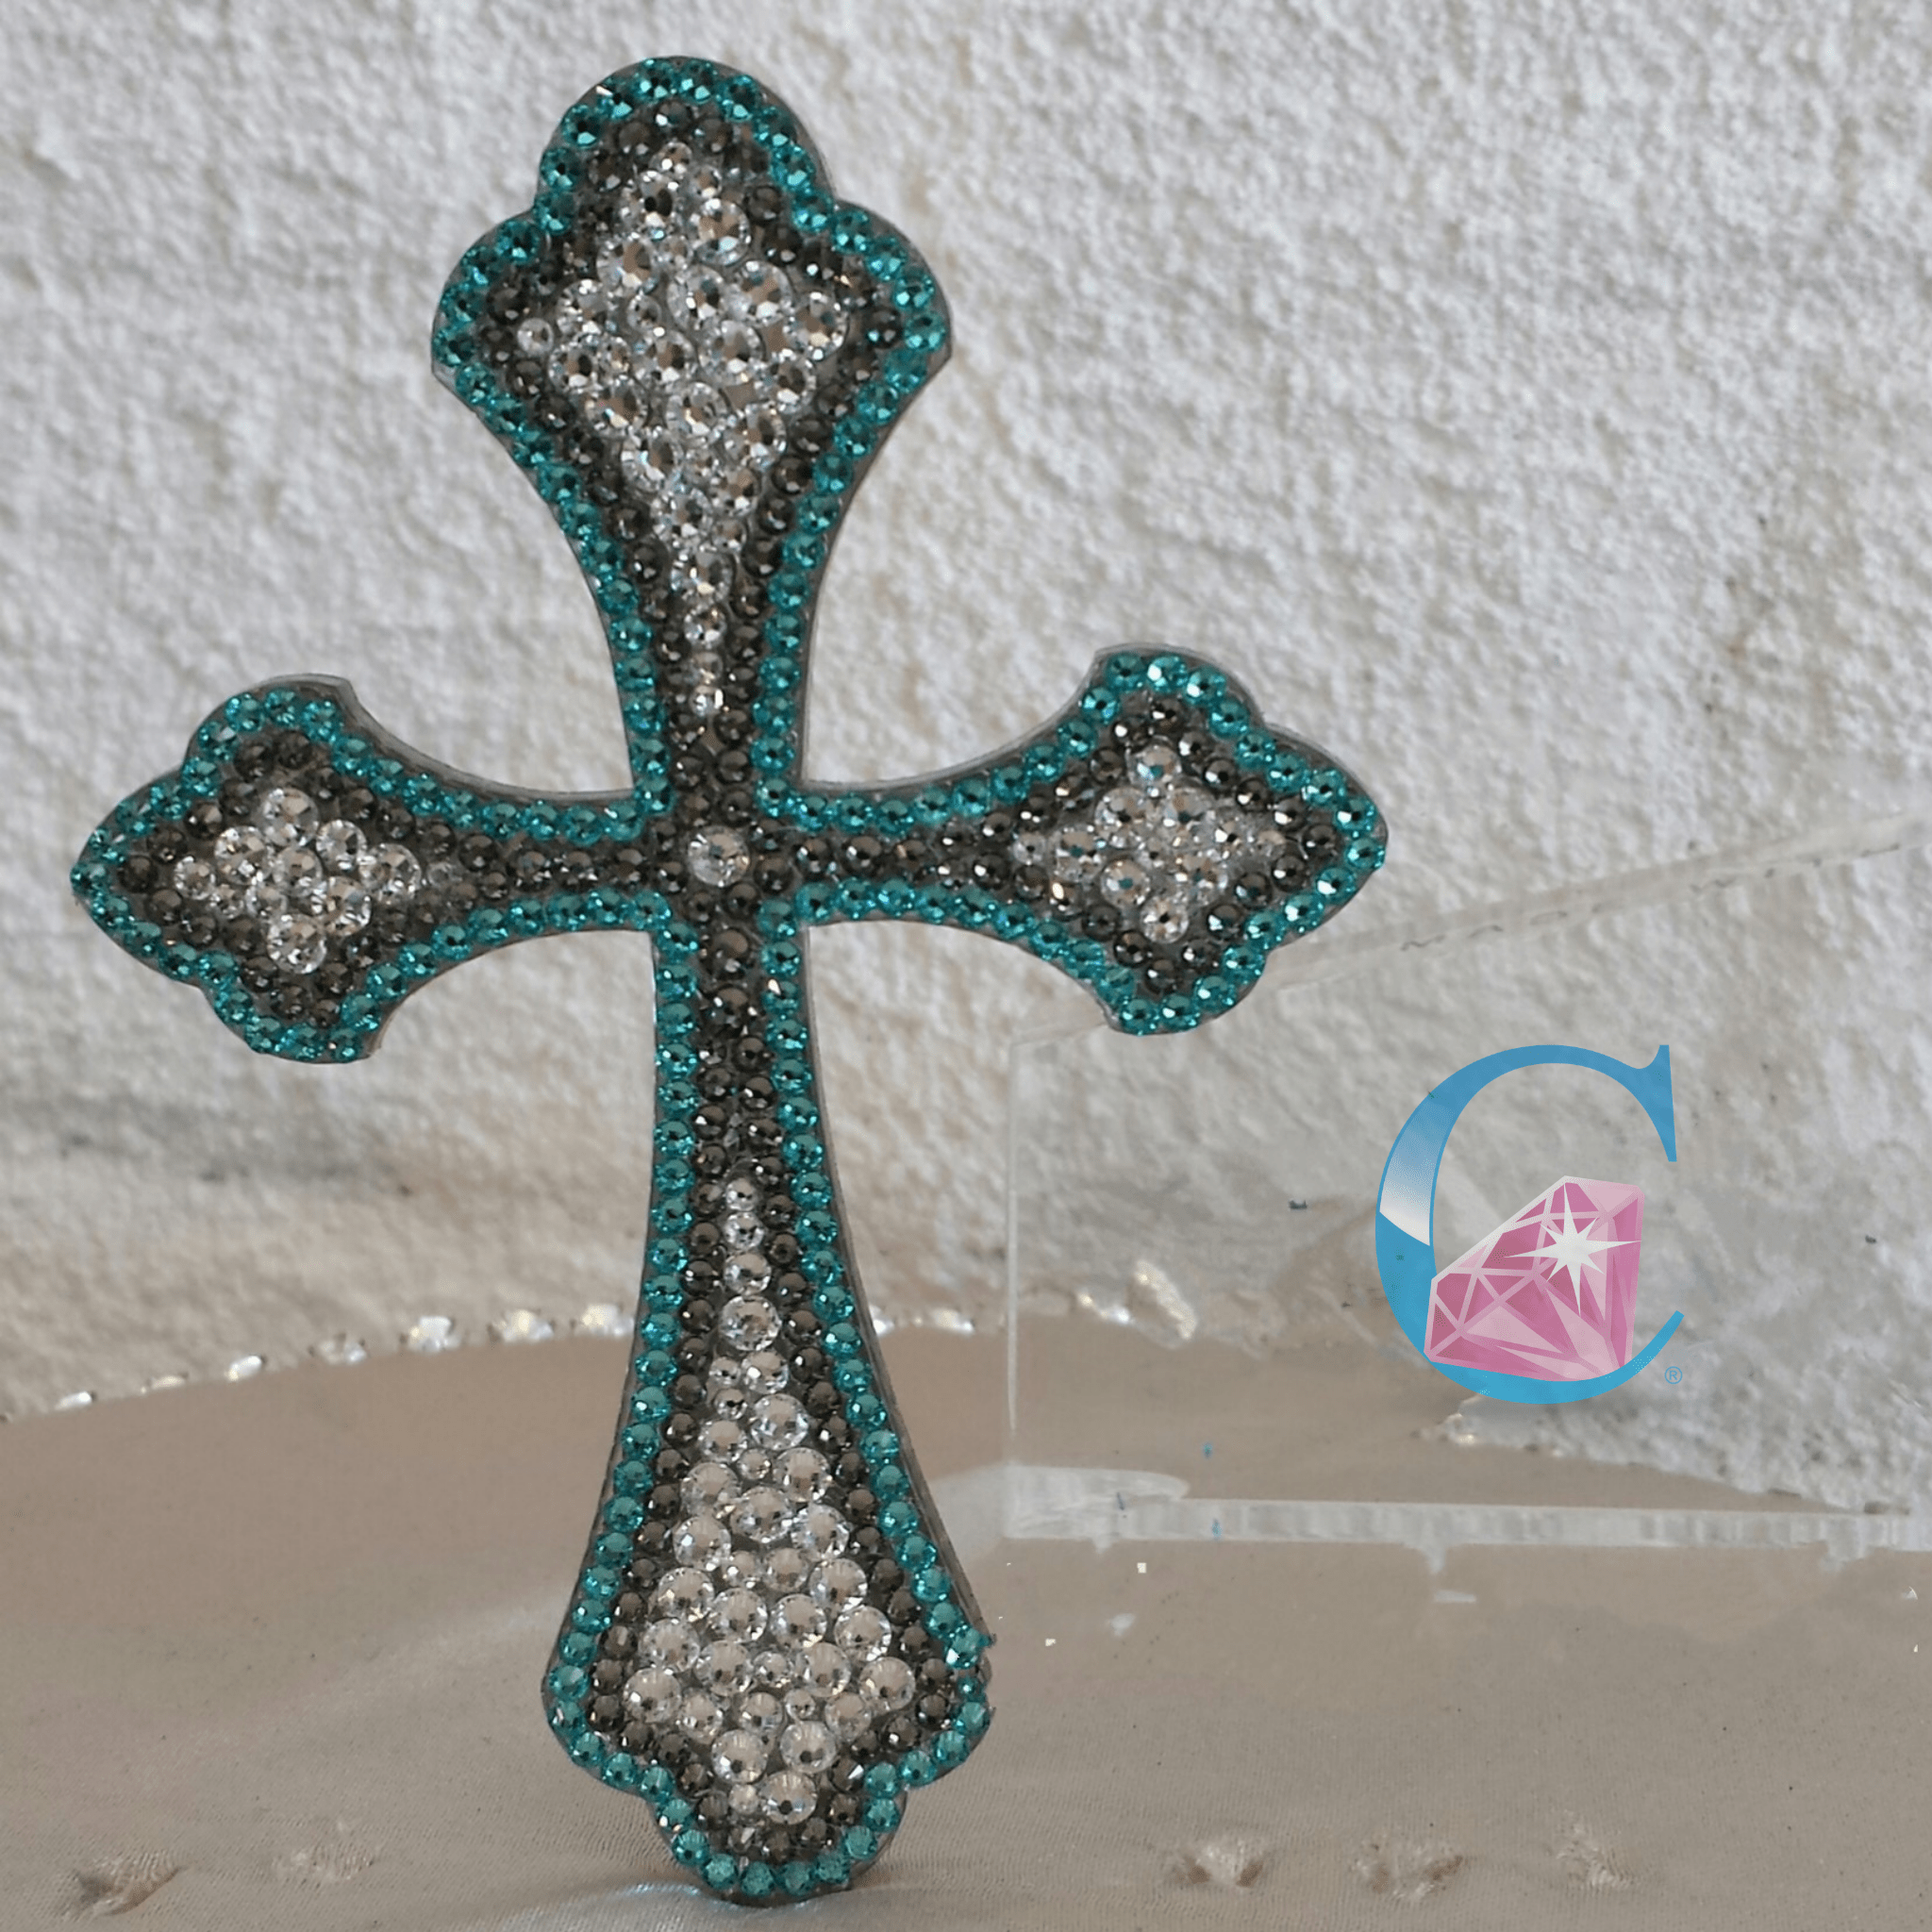 Crystalicious® Curved Cross Cake Topper - Double Outline* - It's Crystalicious®